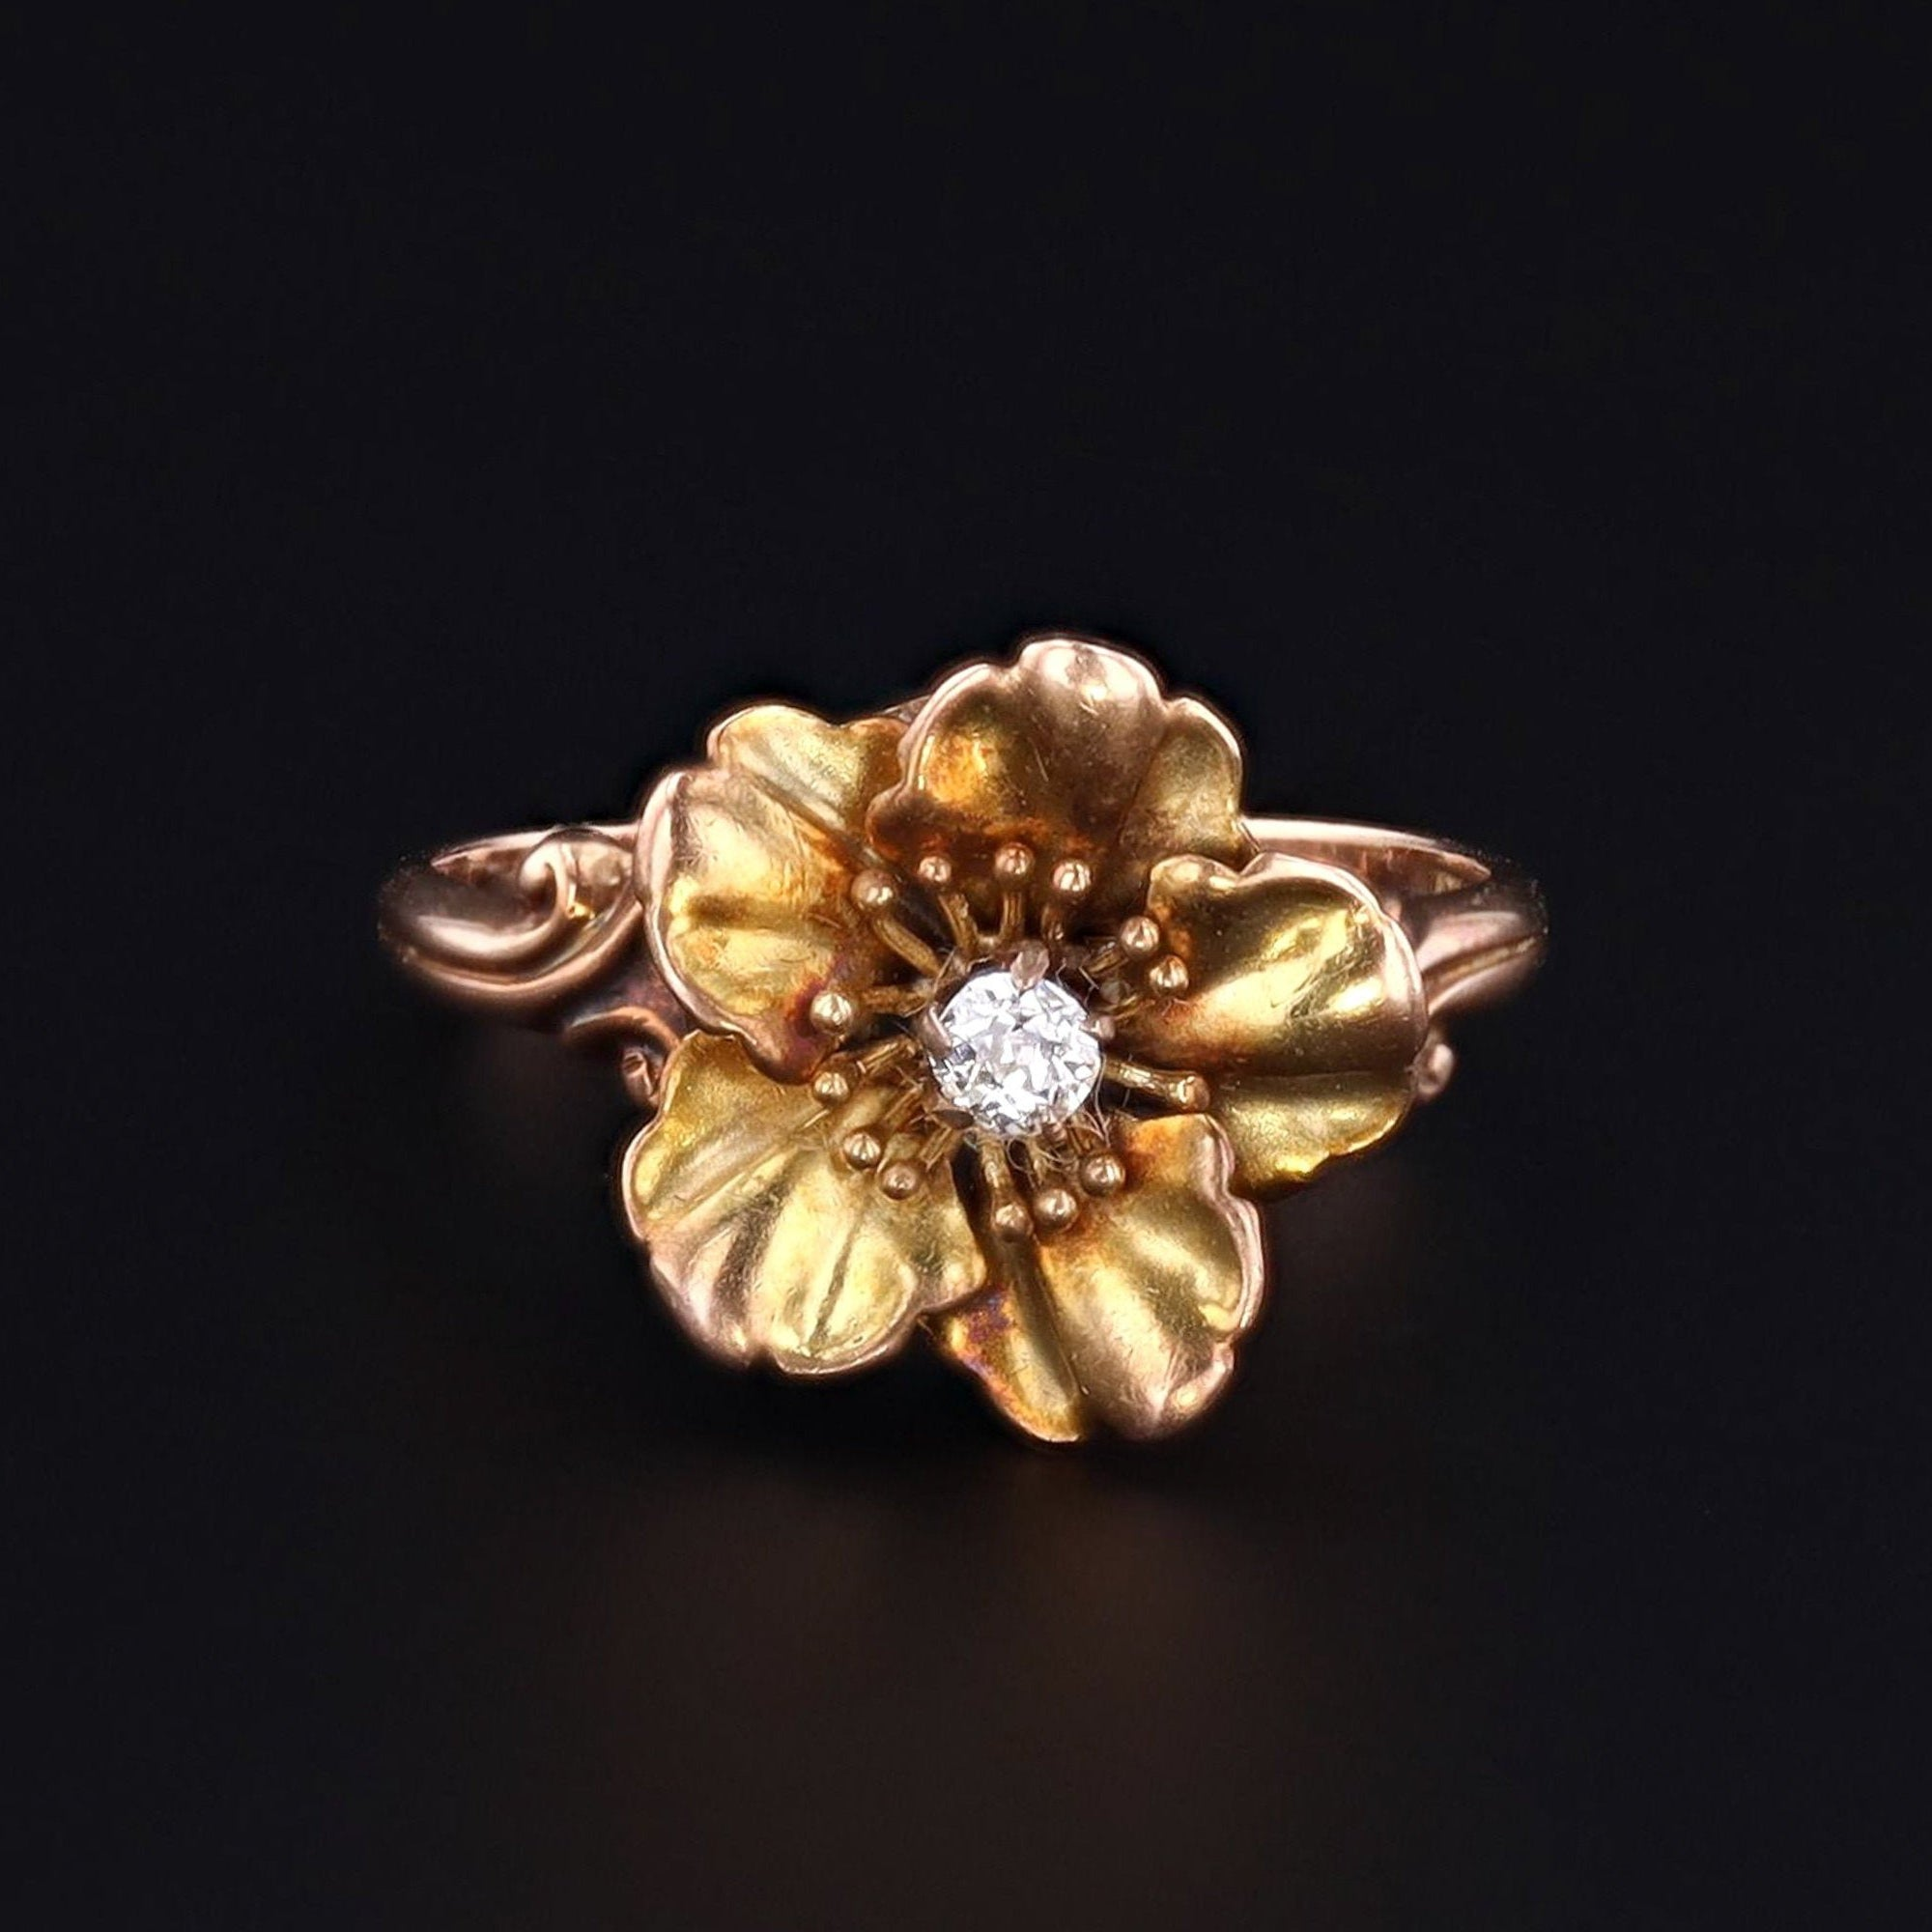 Diamond Flower Ring | Gold Flower Ring | 10k Gold Ring | Antique Ring | Diamond Ring